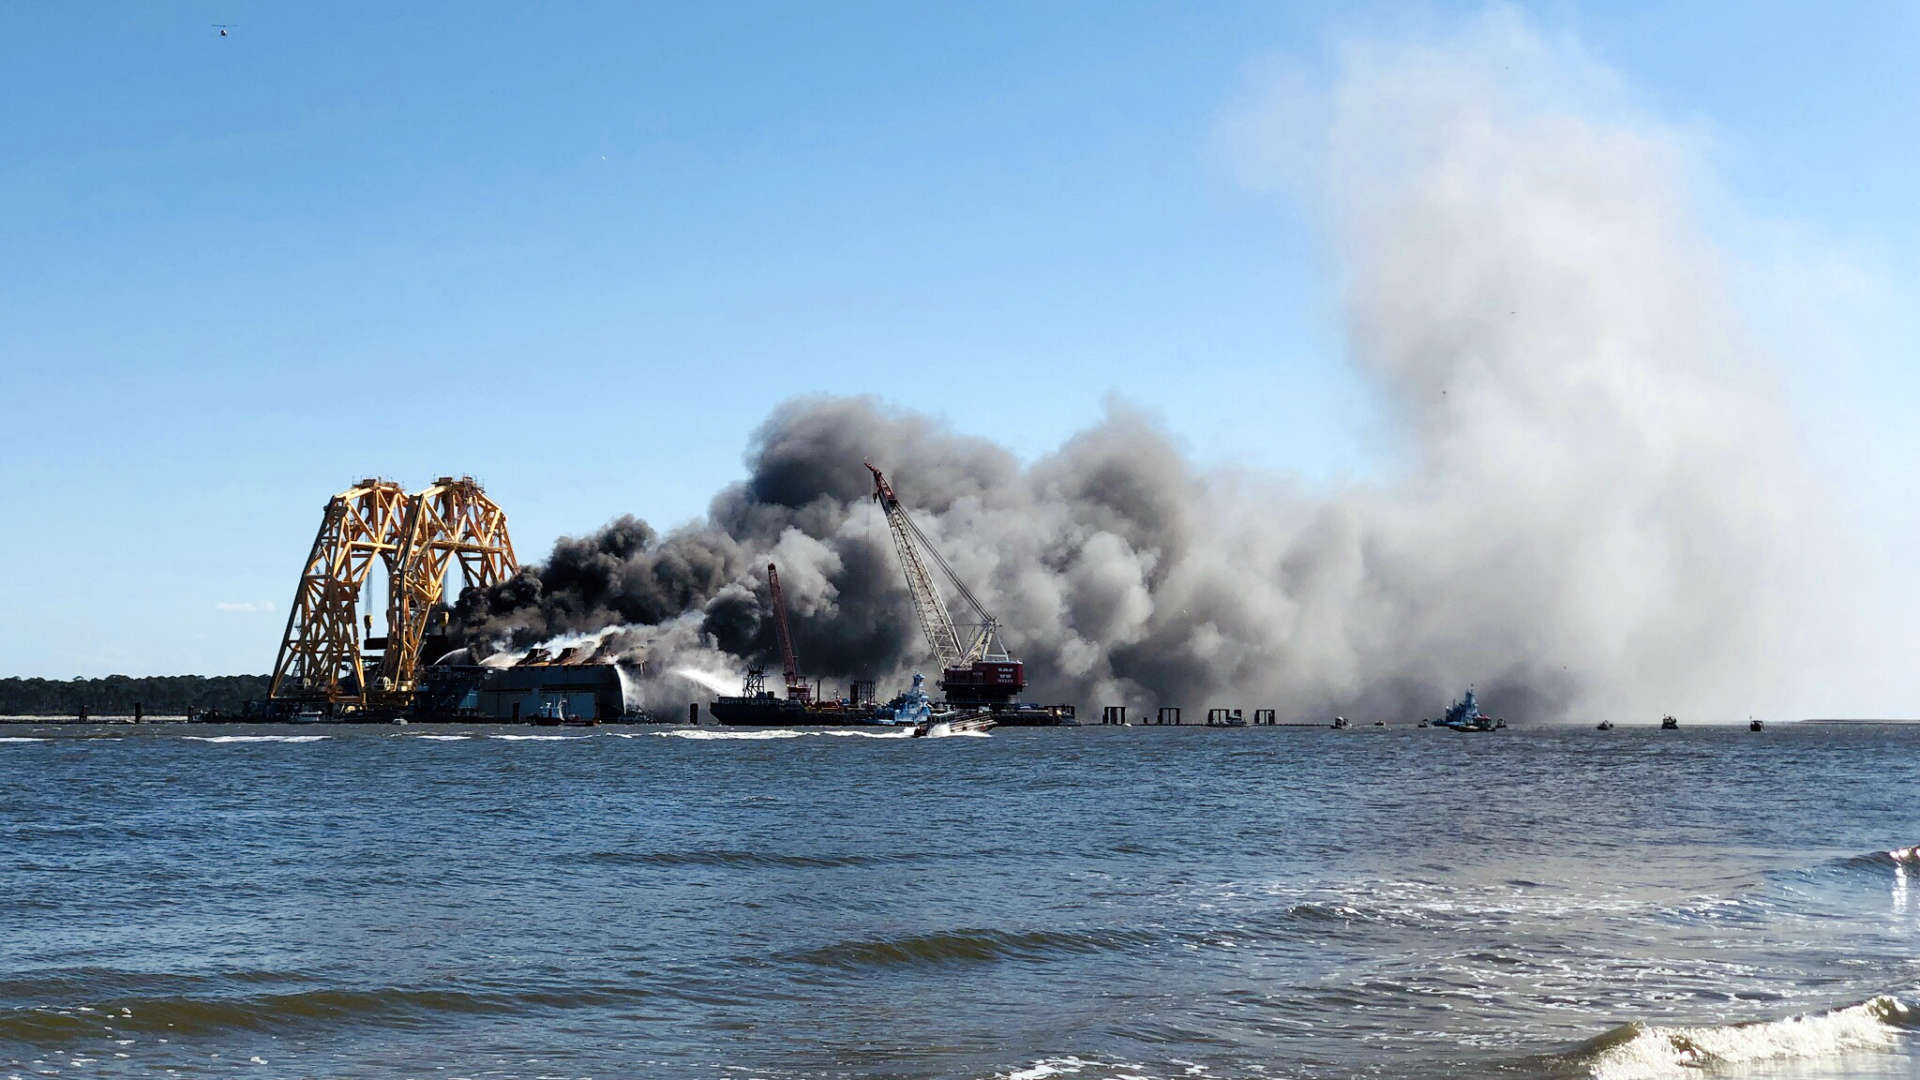 An overturned cargo ship, slowly being disassembled and removed the past two years, caught fire just off Saint Simons Island while we were visiting!